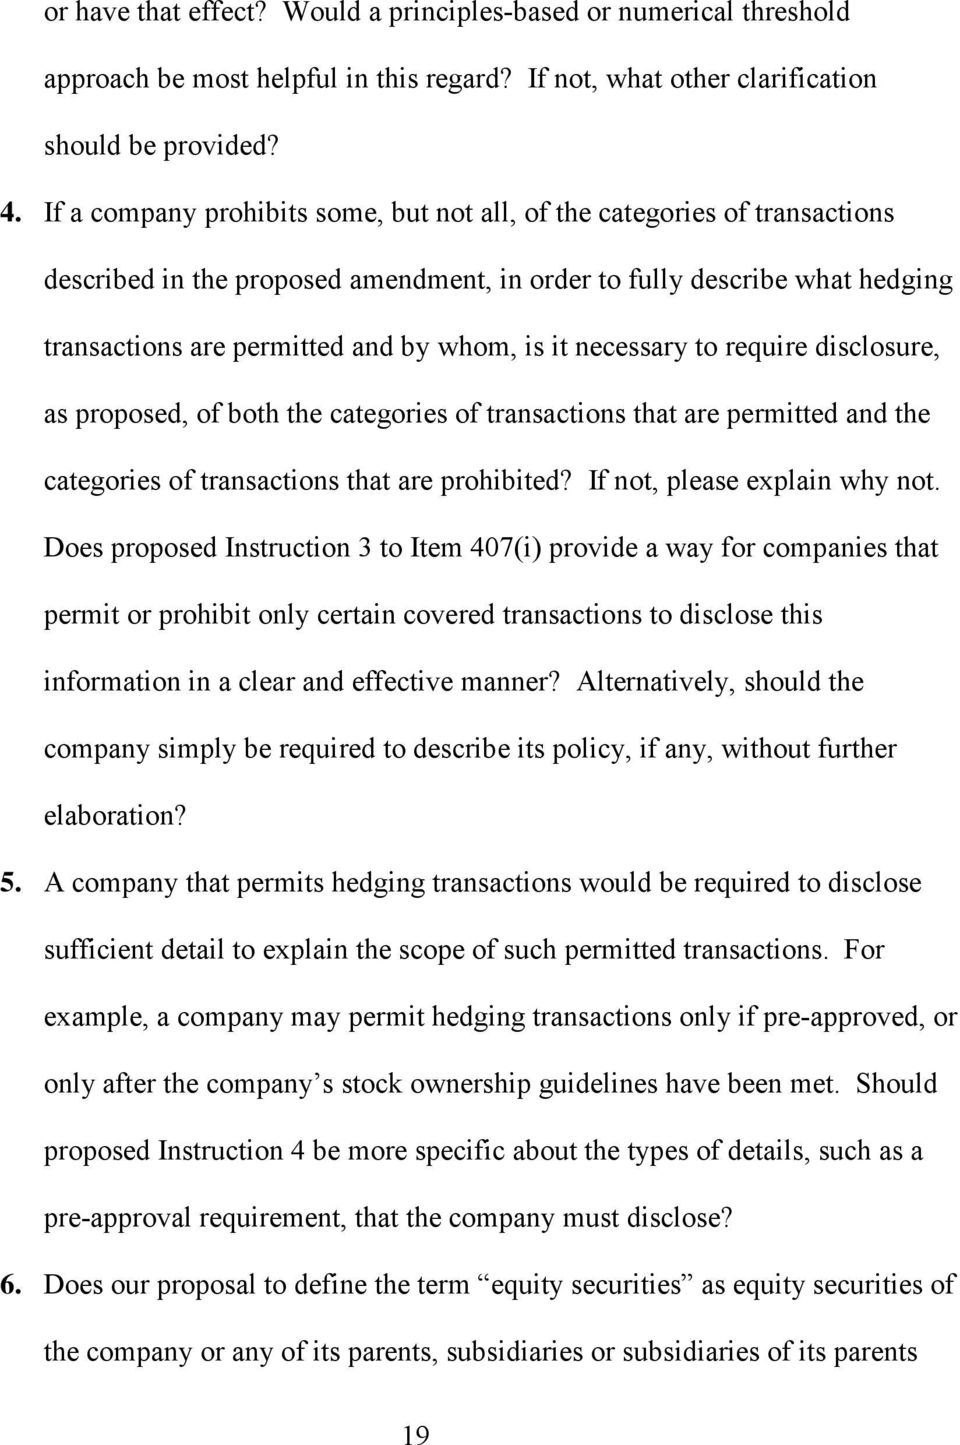 necessary to require disclosure, as proposed, of both the categories of transactions that are permitted and the categories of transactions that are prohibited? If not, please explain why not.